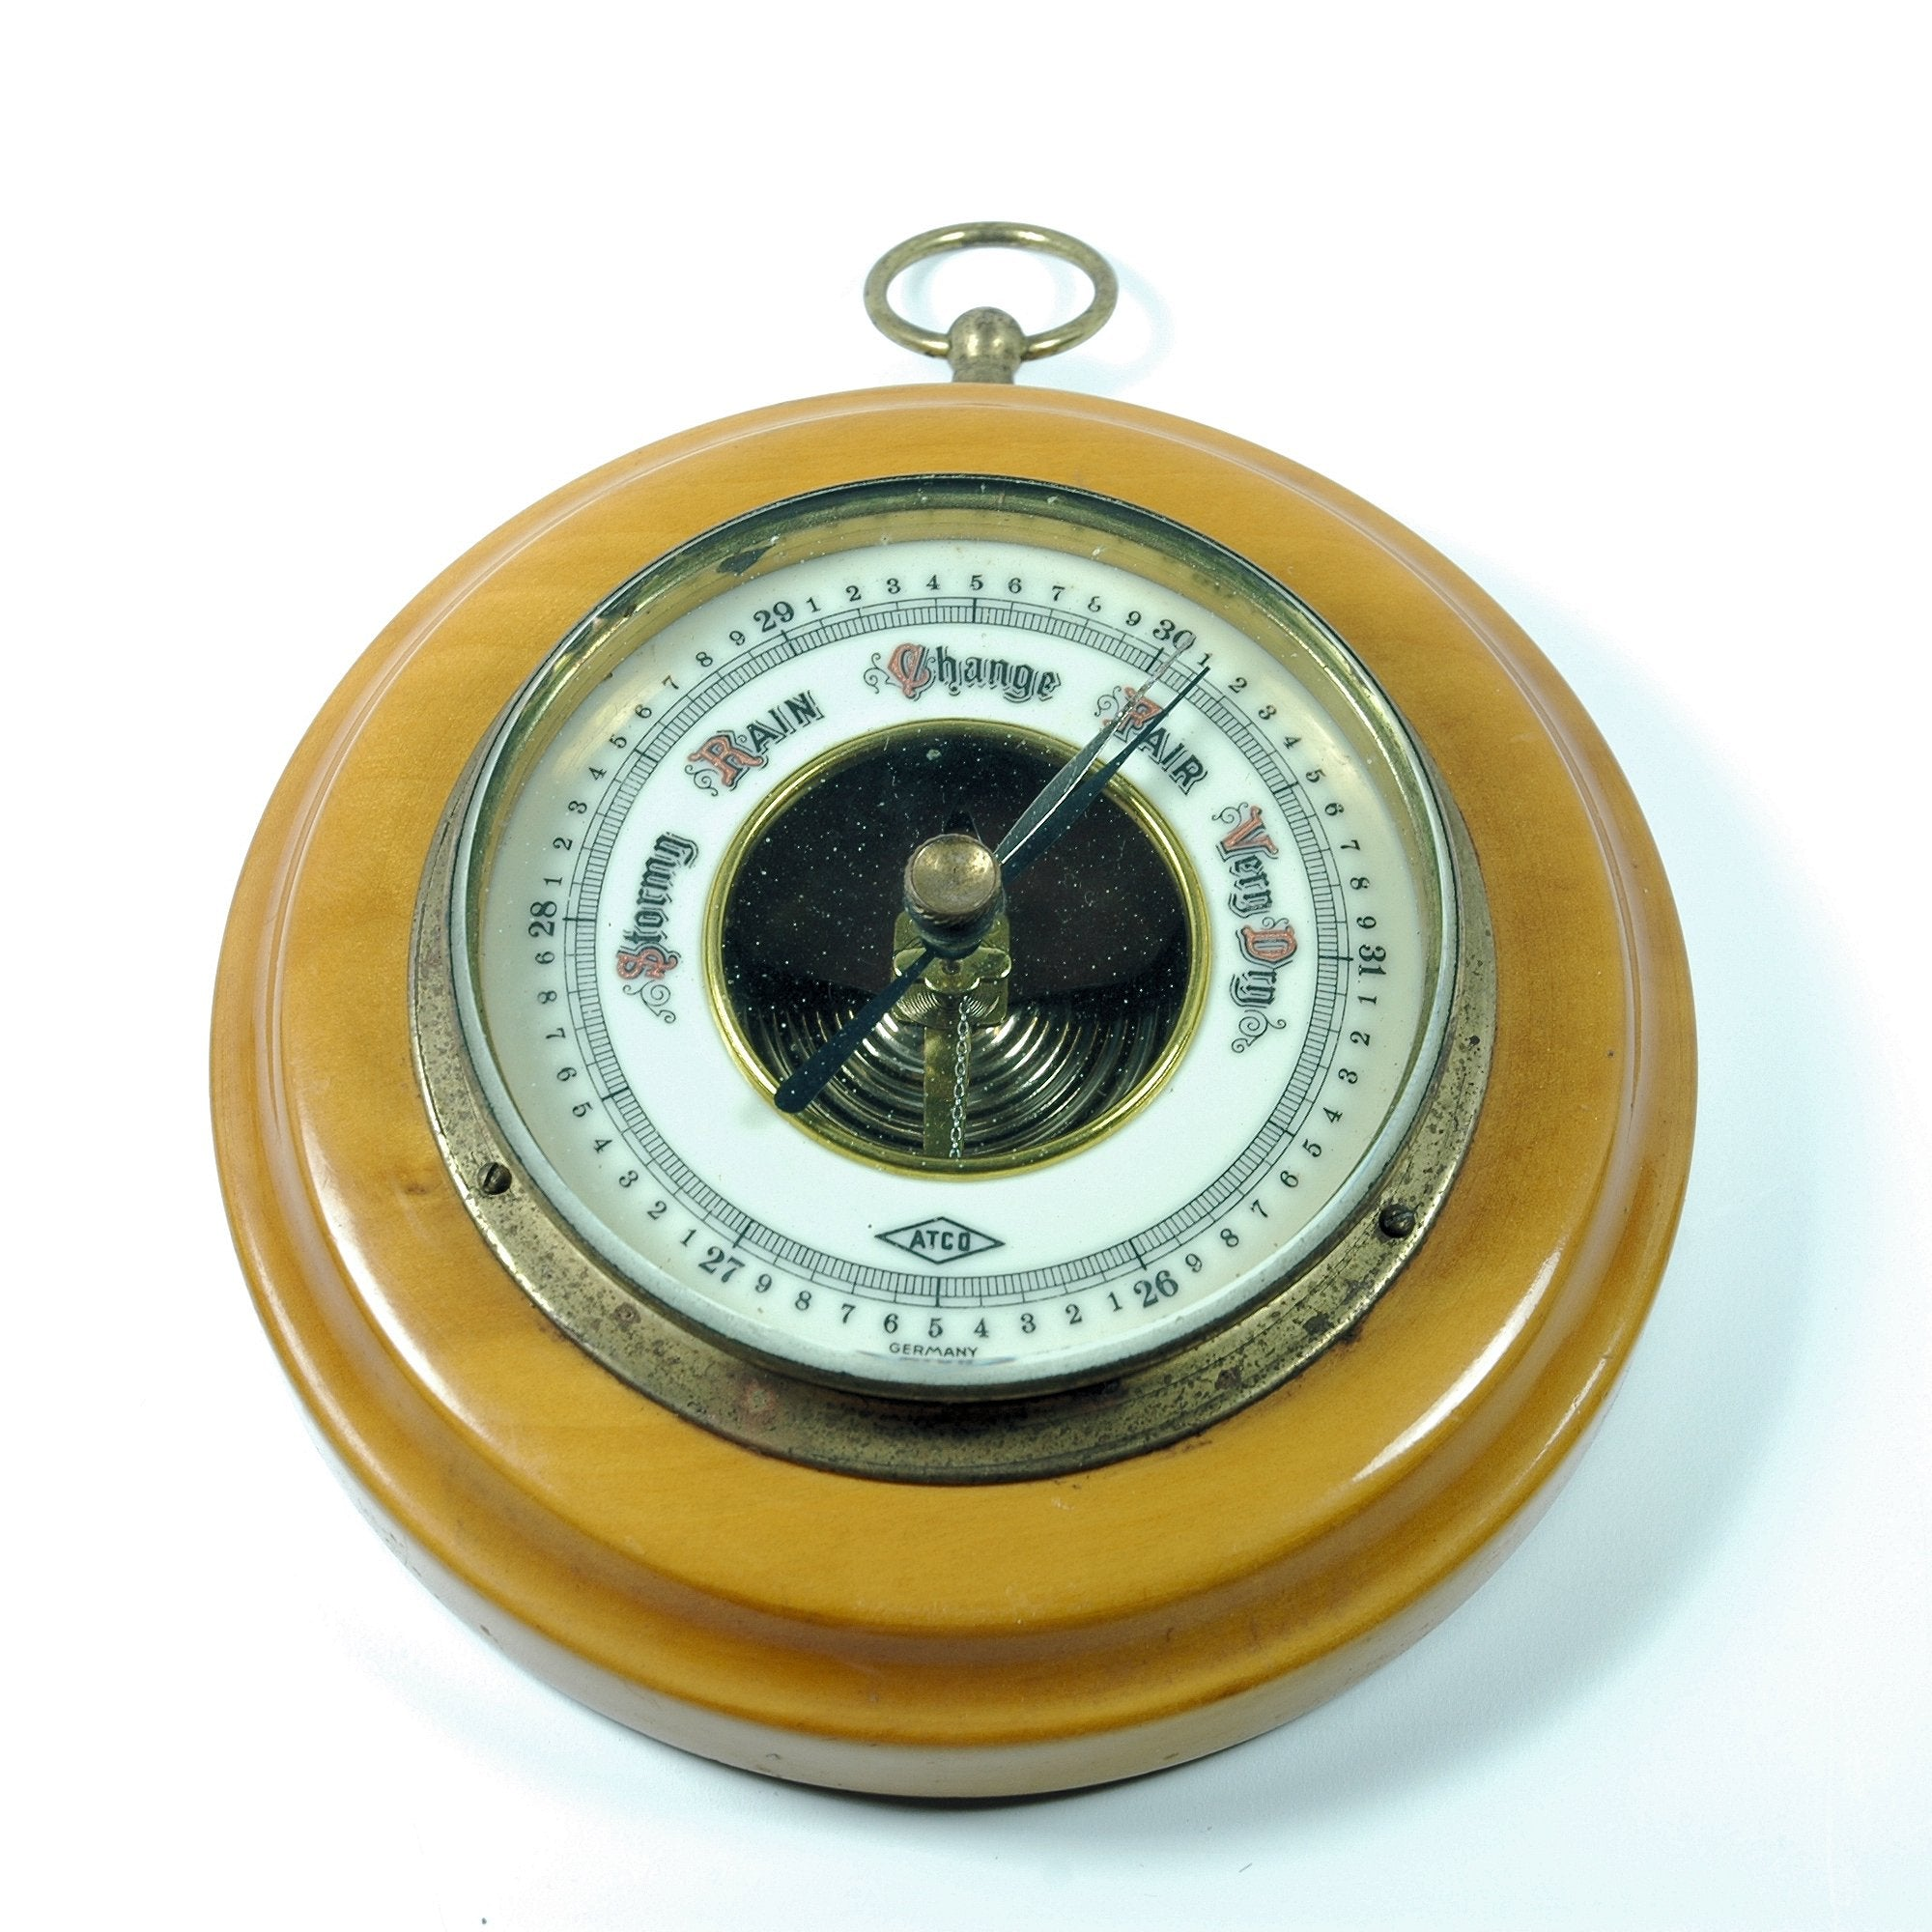 Vintage Barometer ATCO Porcelain Face Aneroid made in Germany (c.1950s)